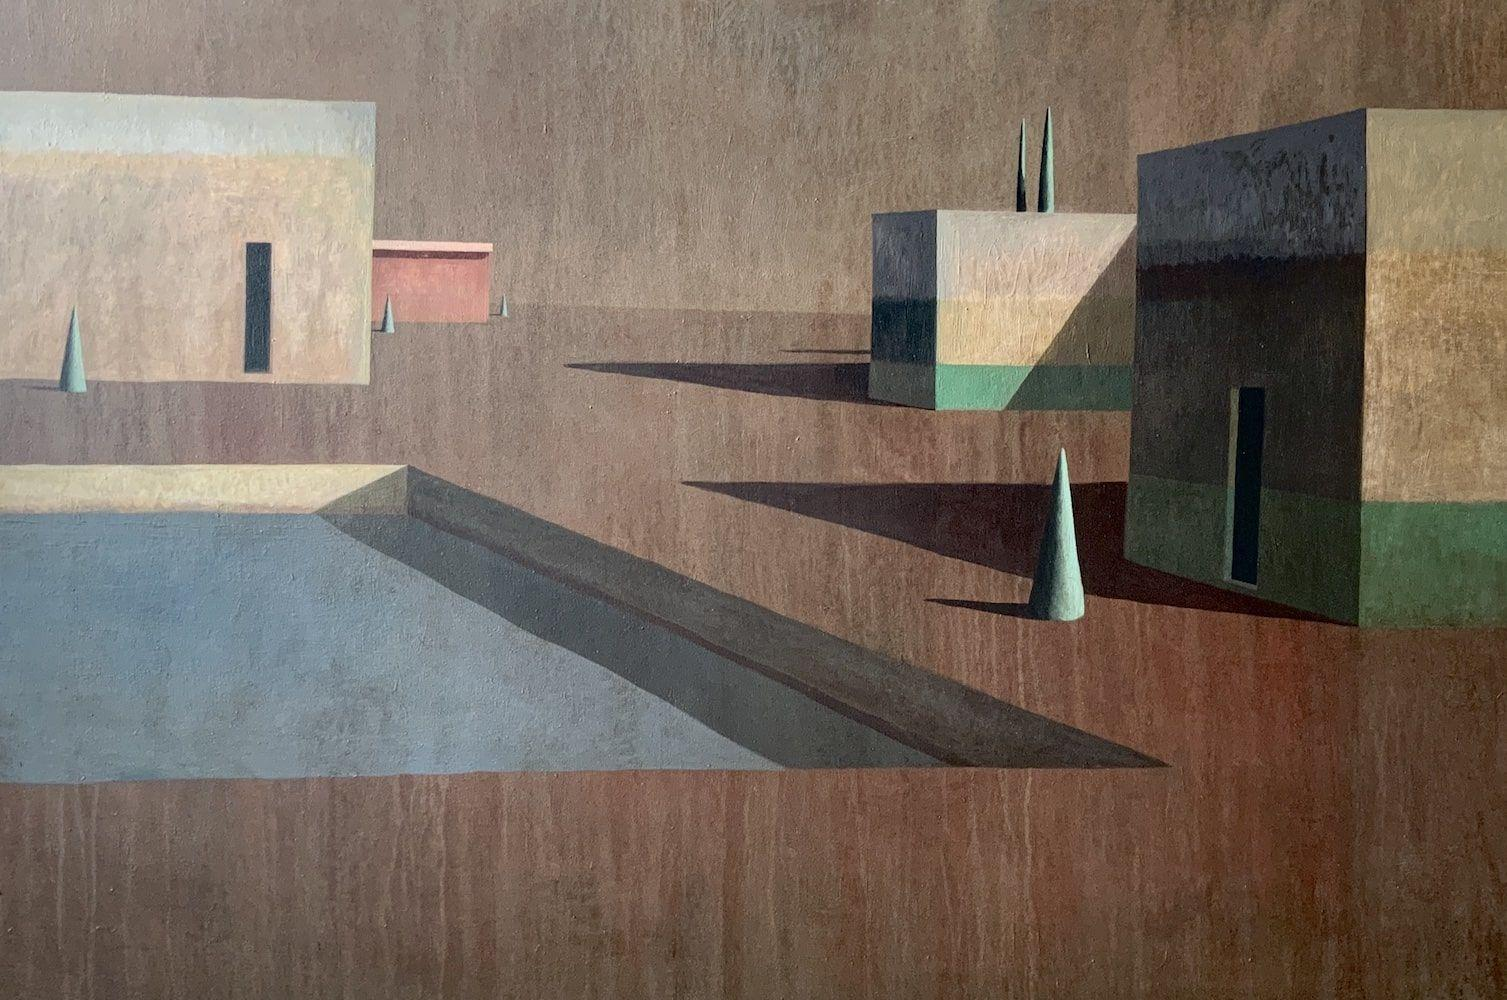 Arca 3 by Ramon Enrich - Contemporary Geometric Landscape Painting, earth tones